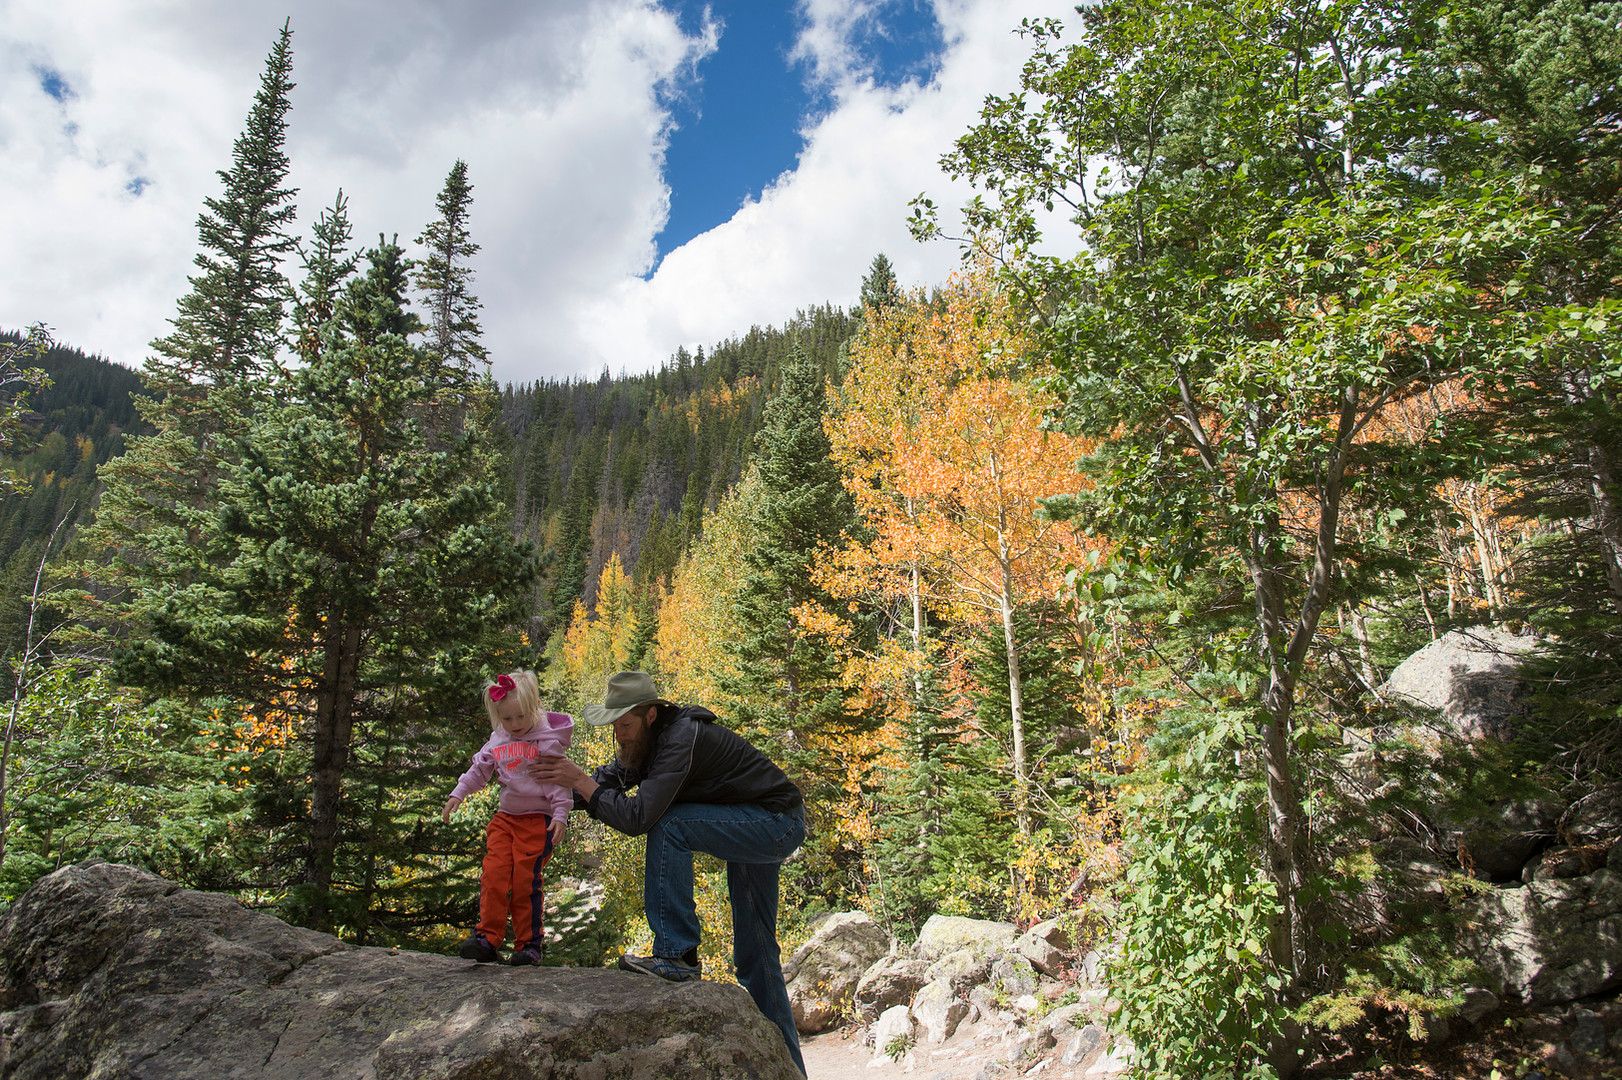 Brian Fletcher and his daughter Adalyn, 3, visiting from Asheville, North Carolina, climb a rock to take a photo surrounded by fall colors on the Bear Lake loop trail in Rocky Mountain National Park Thursday, September 17, 2015.